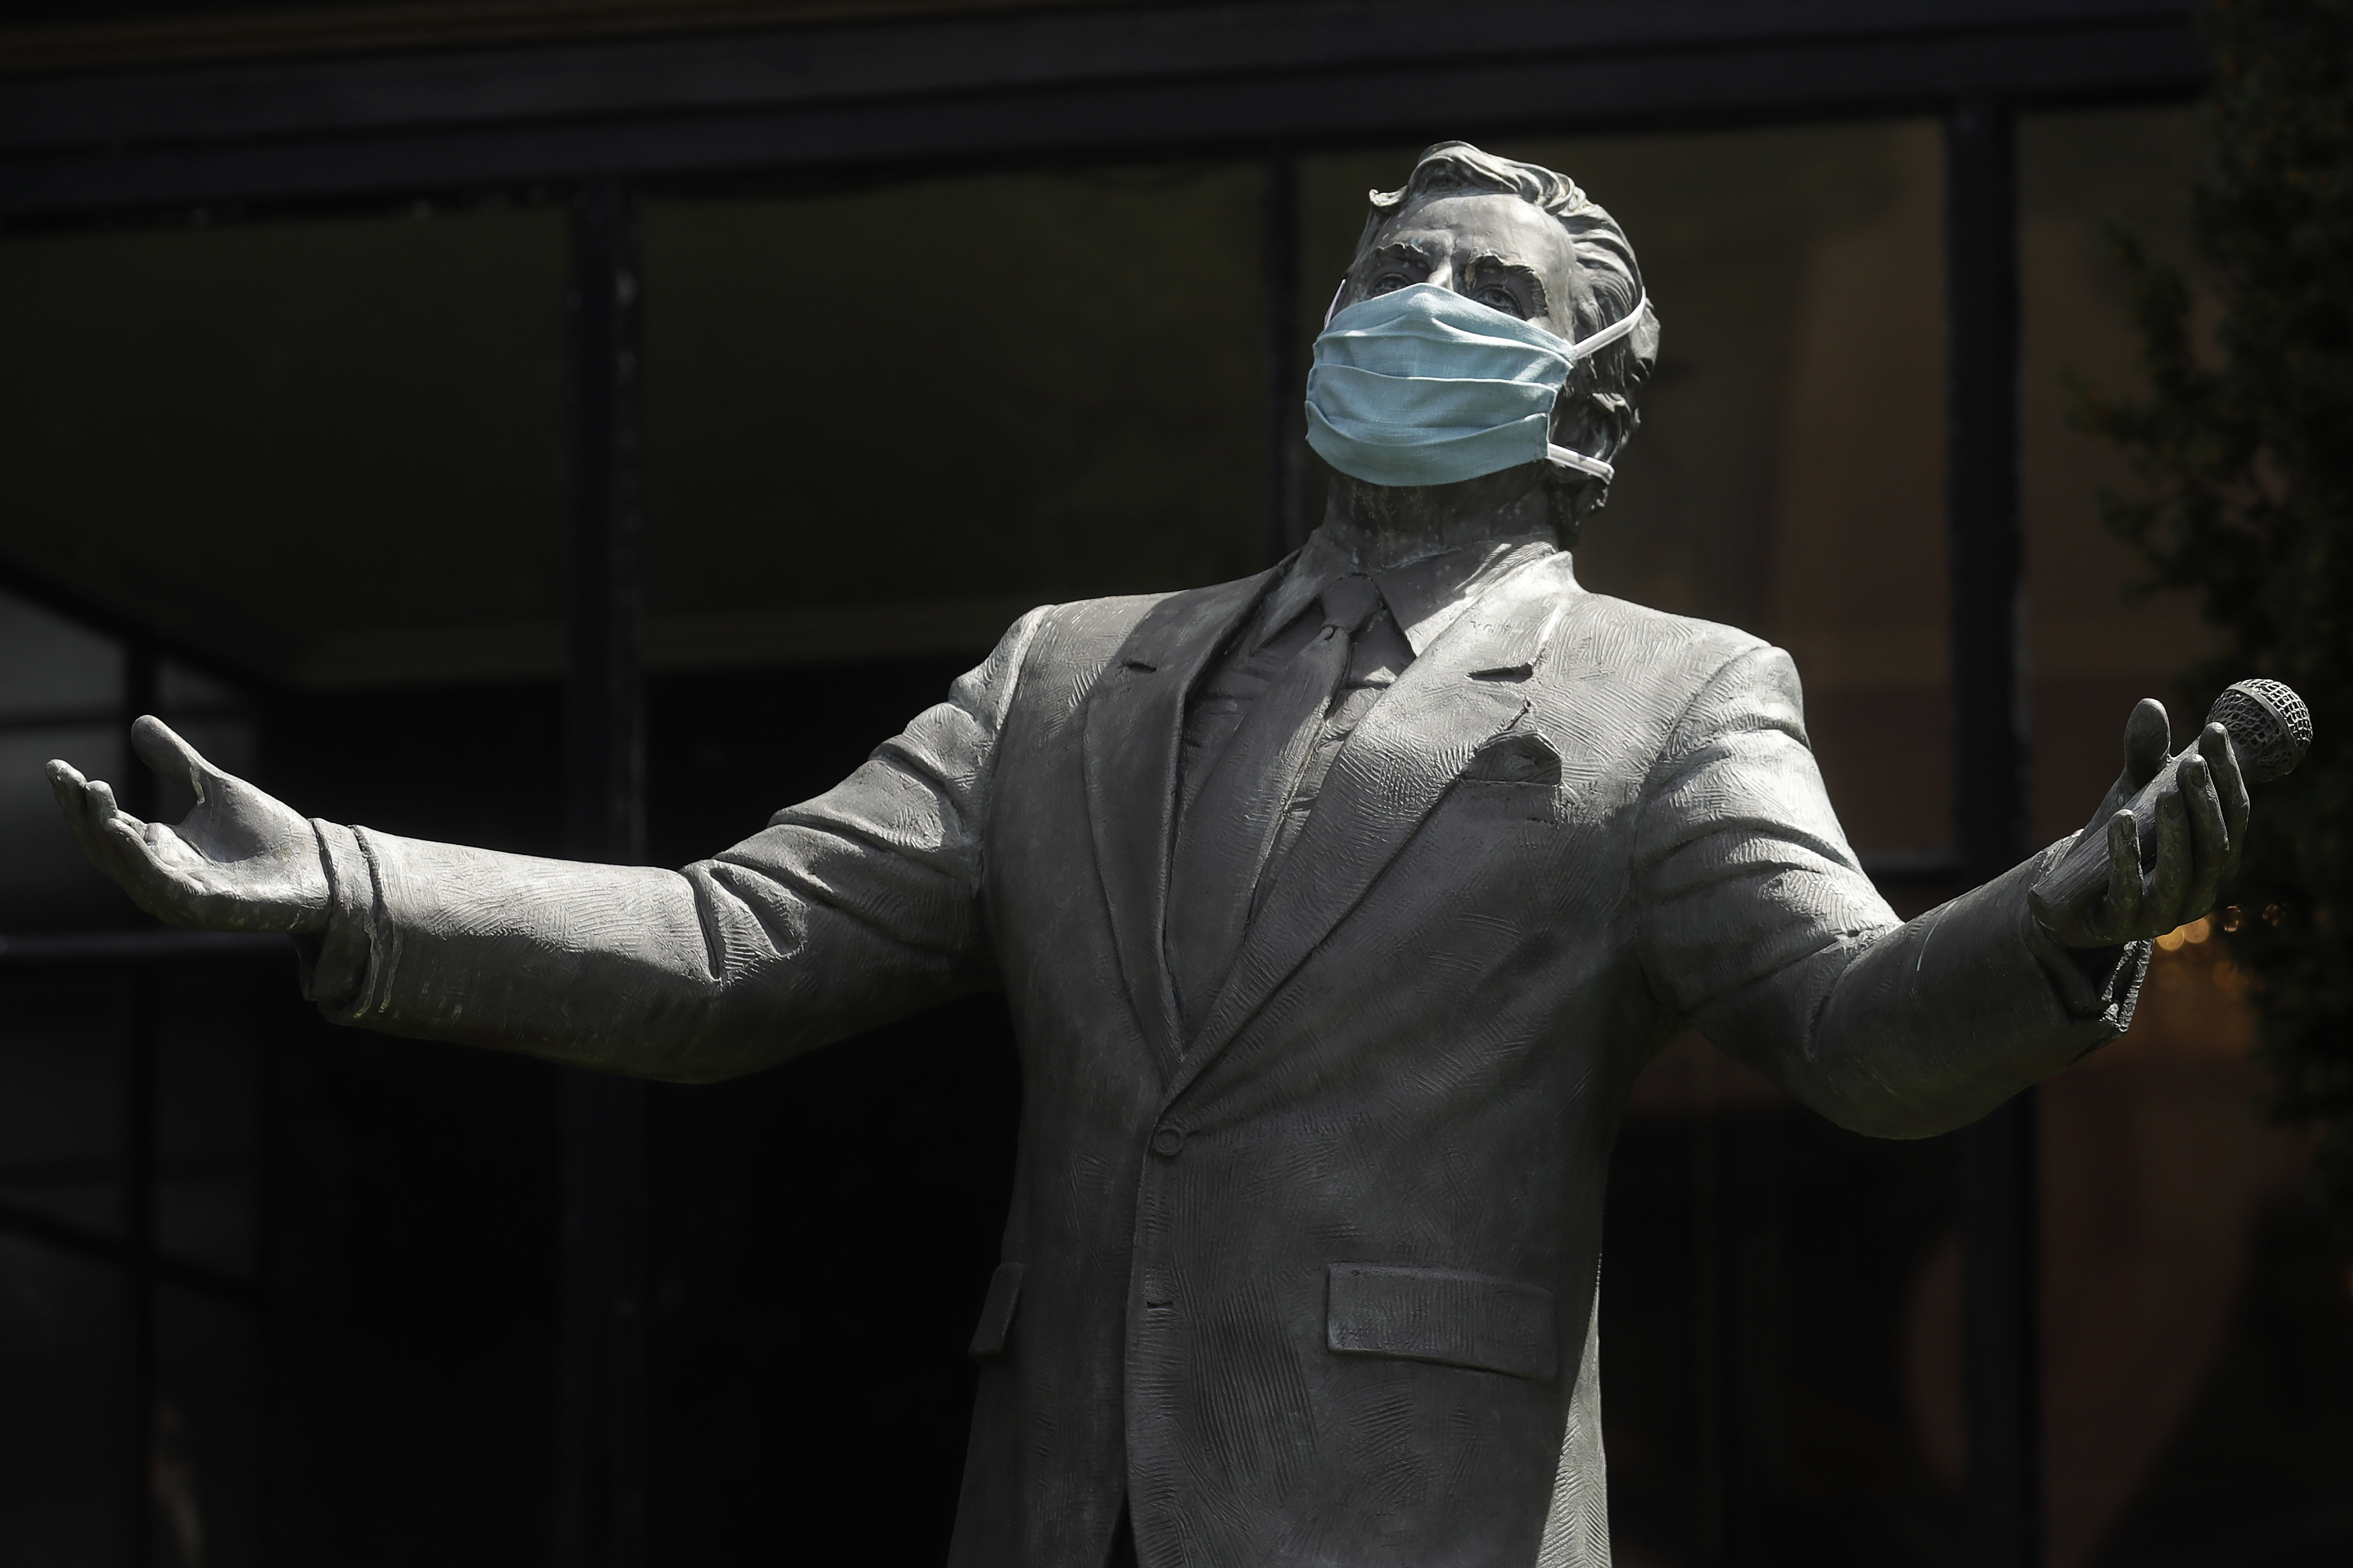 A face mask covering the face of a bronze statue of a man.